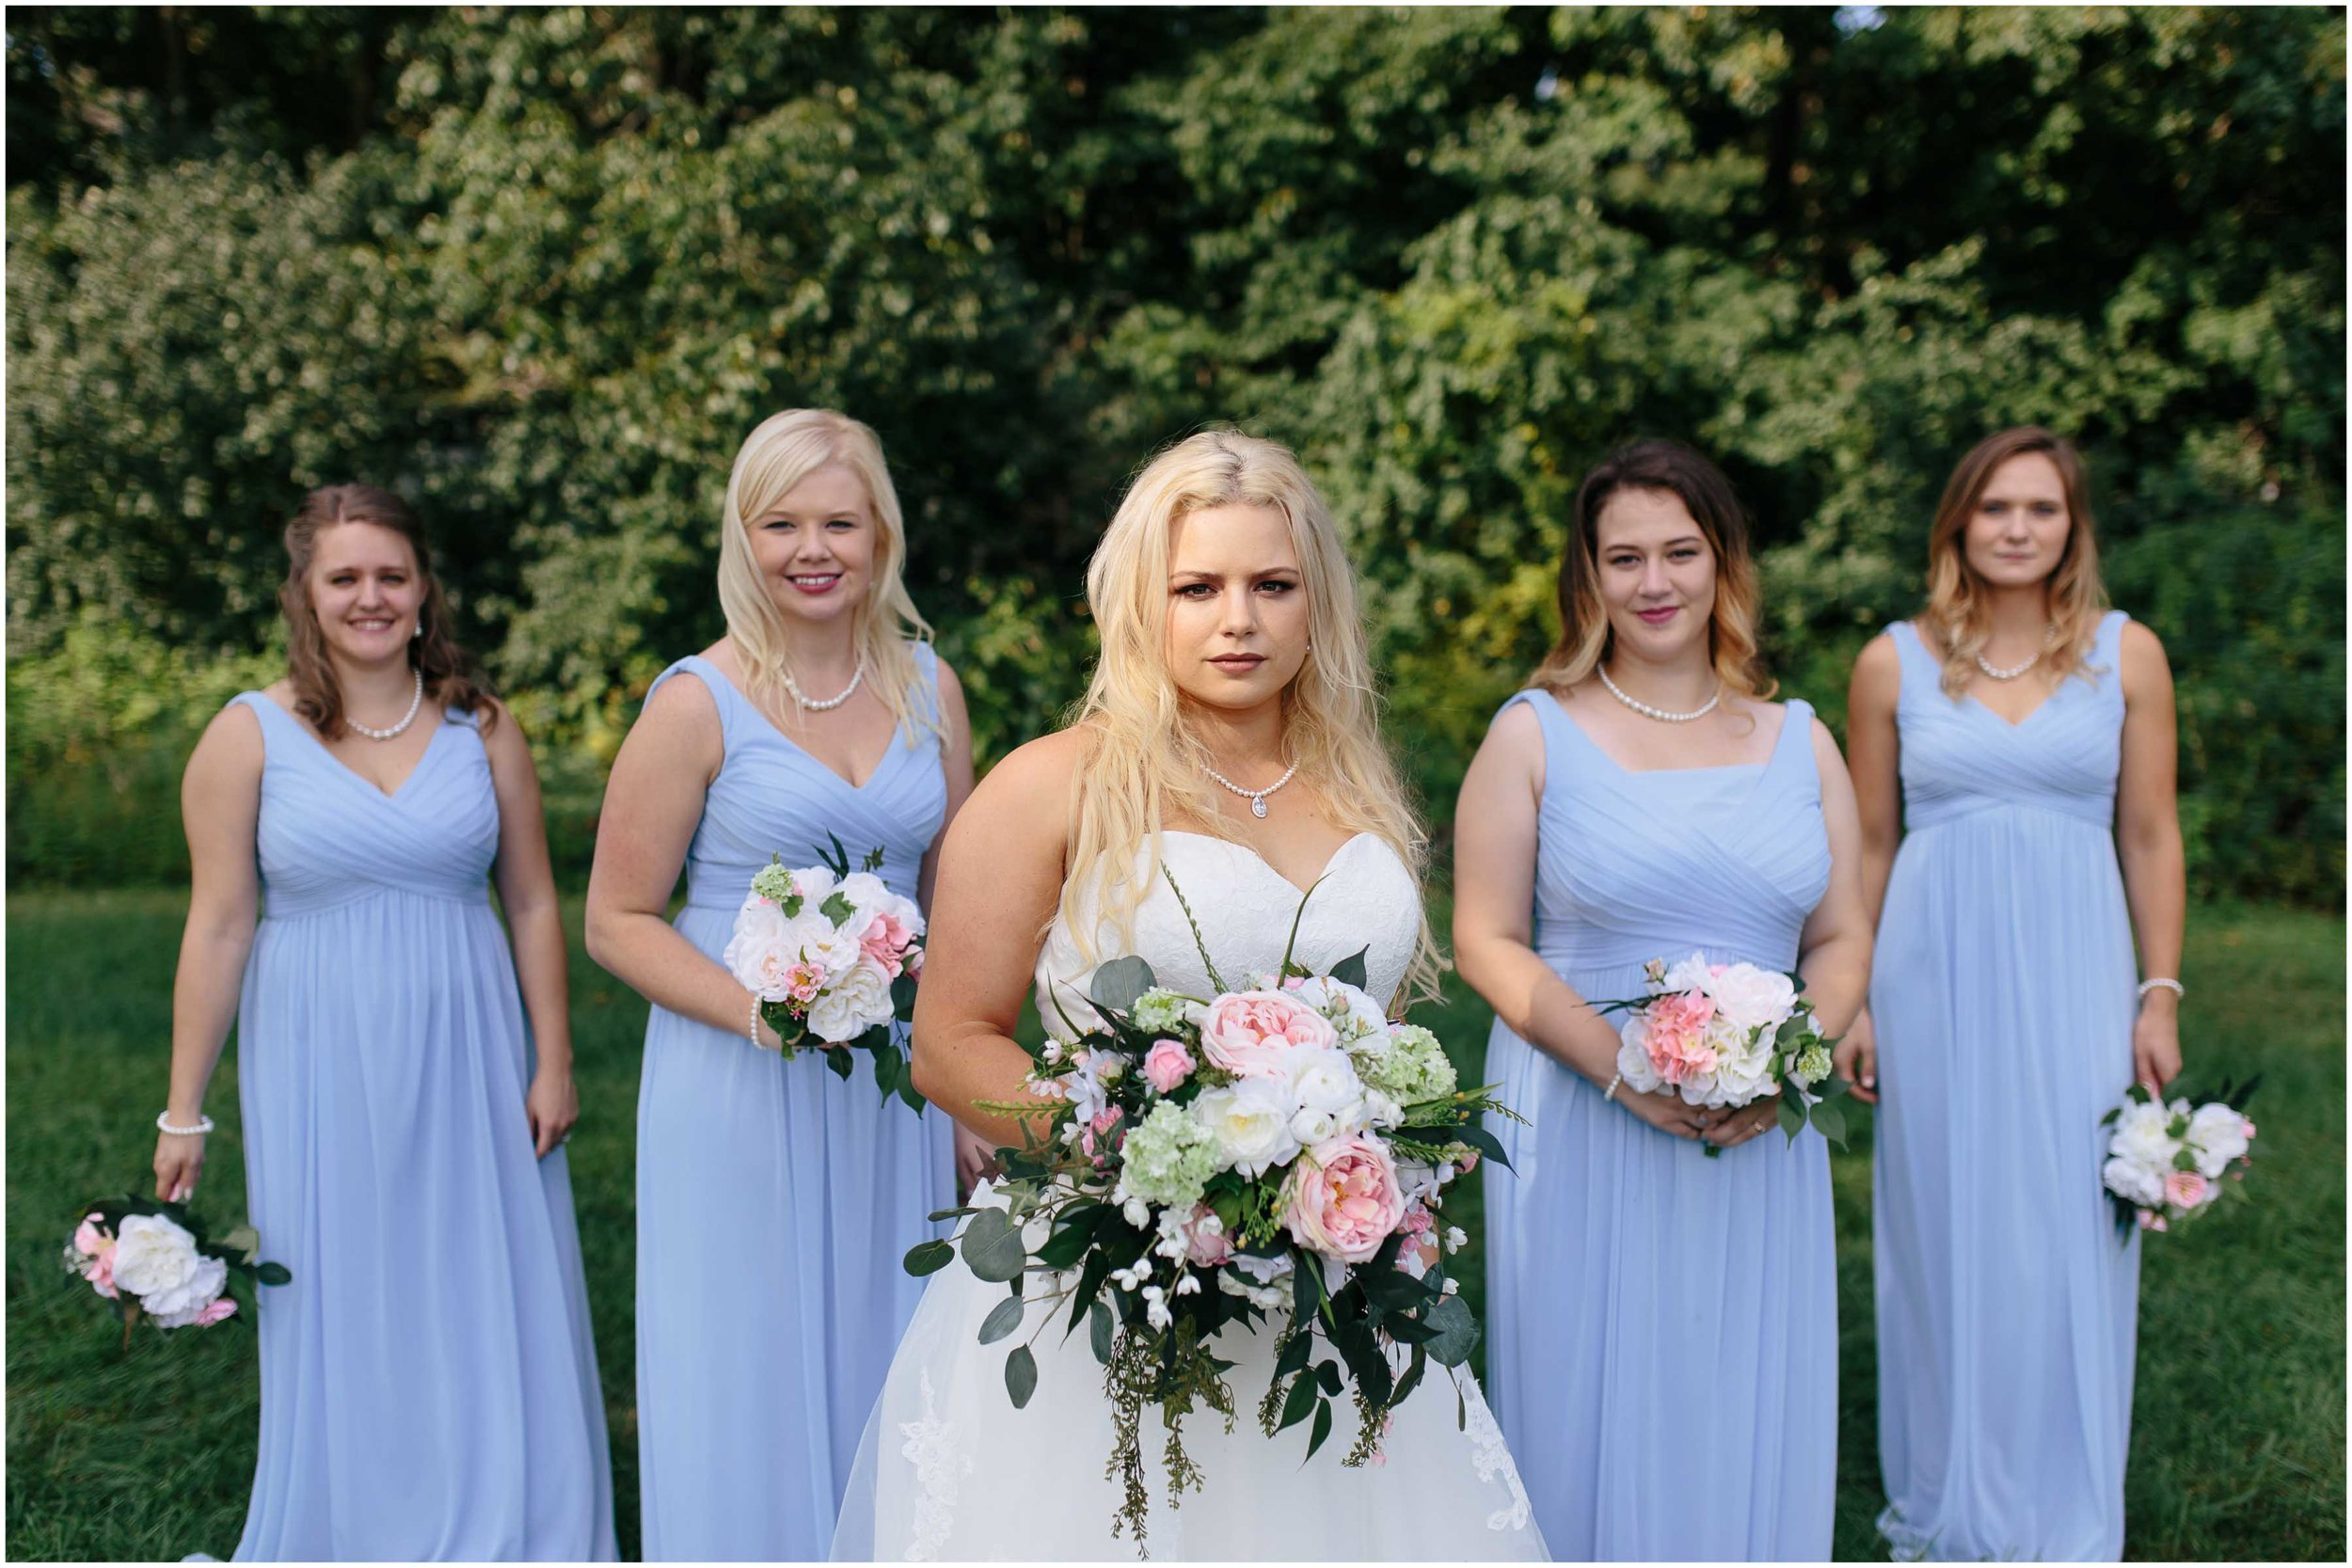 Cozy Country Church Wedding in Pepperell, Massachusetts bride and bridesmaids